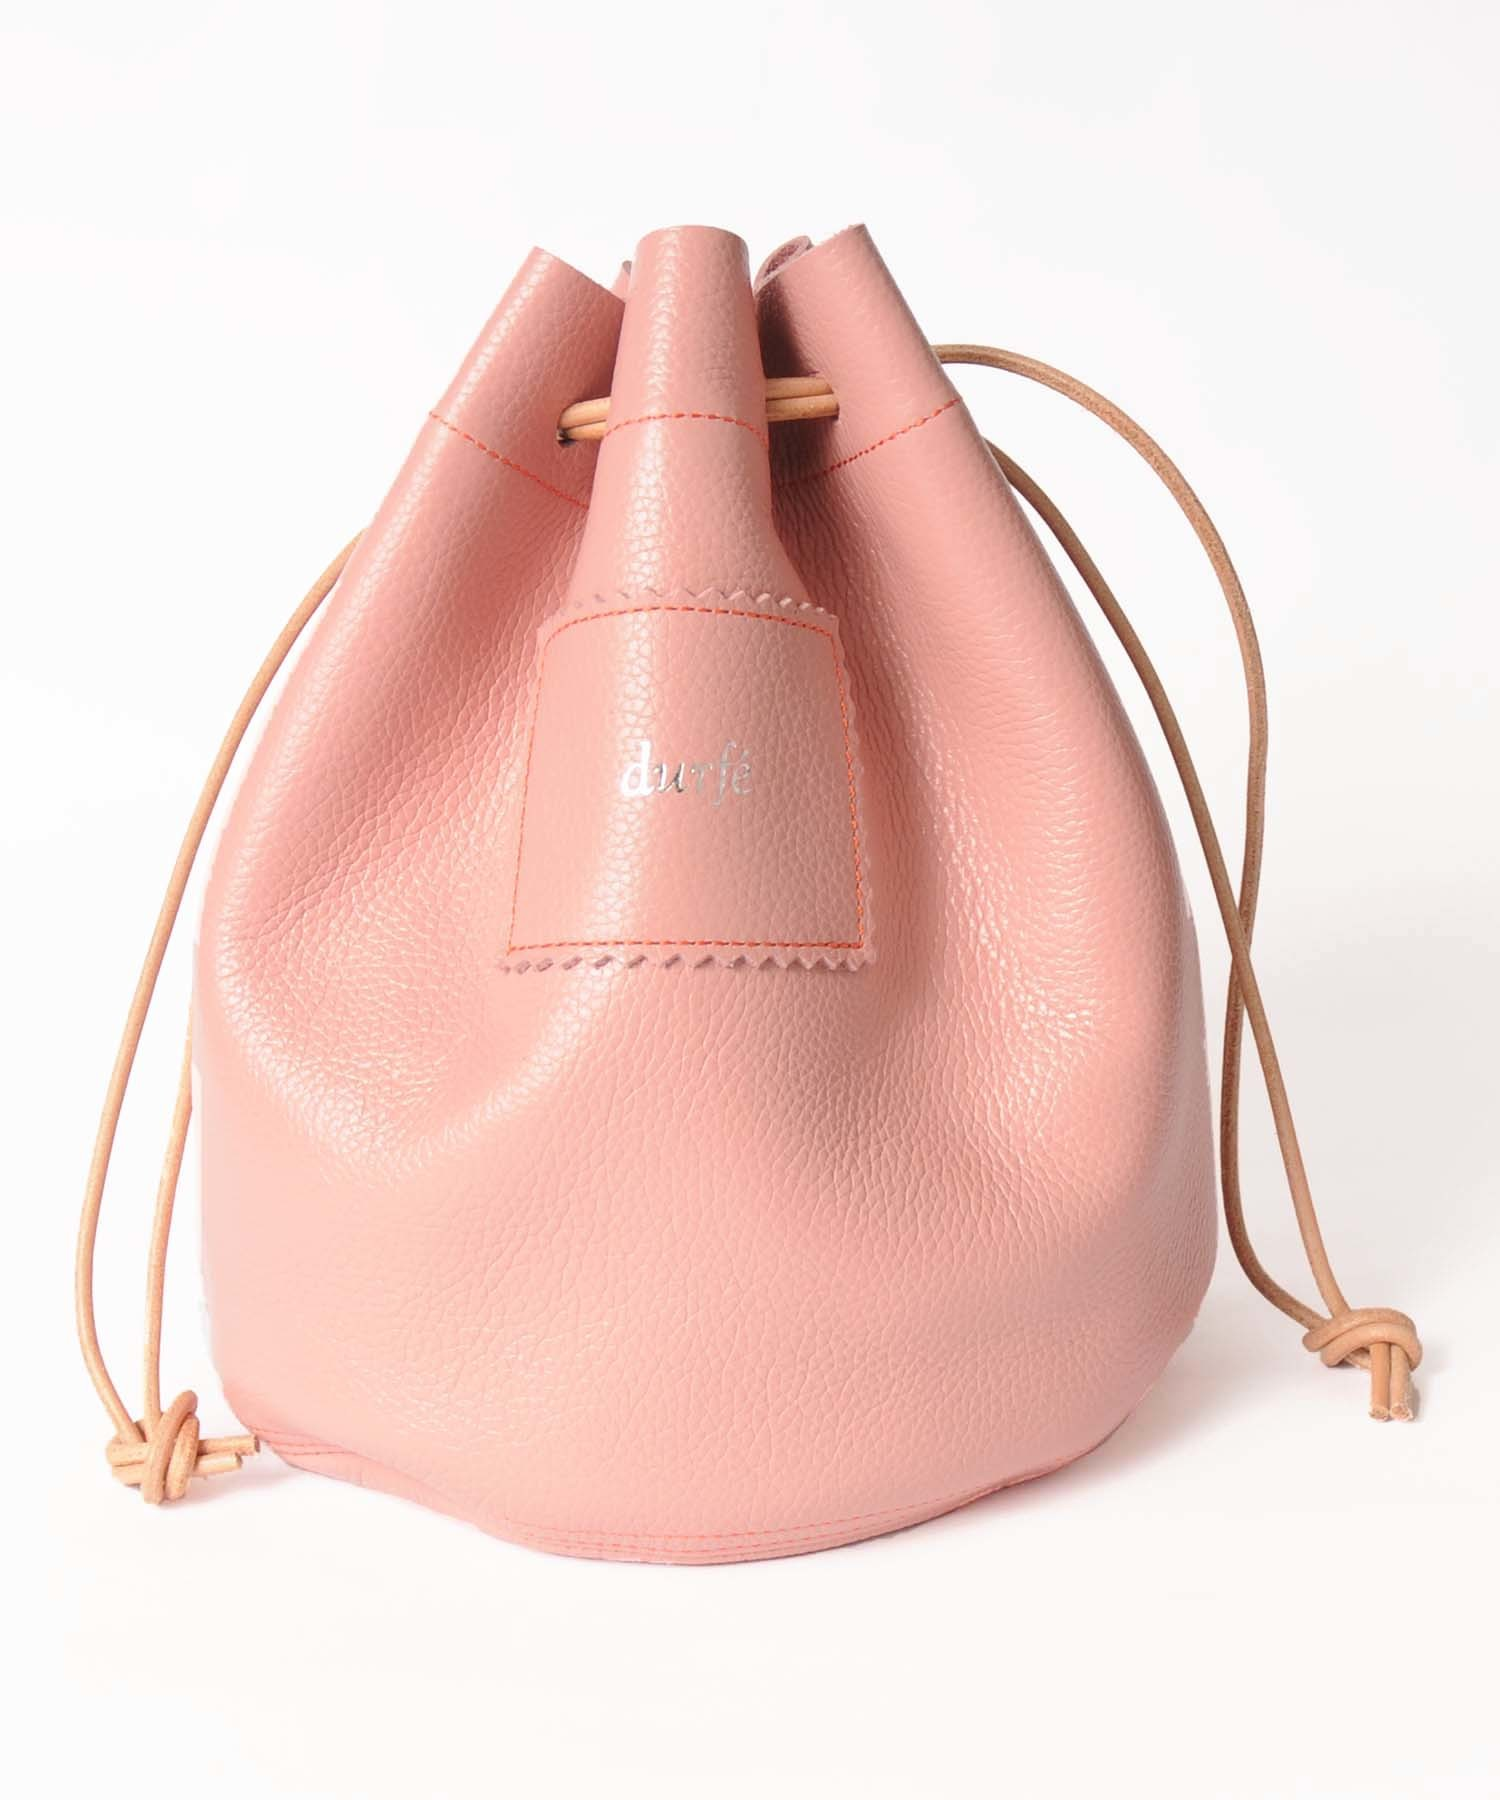 df18SS-FG01 LEATHER CIRCLE BAG